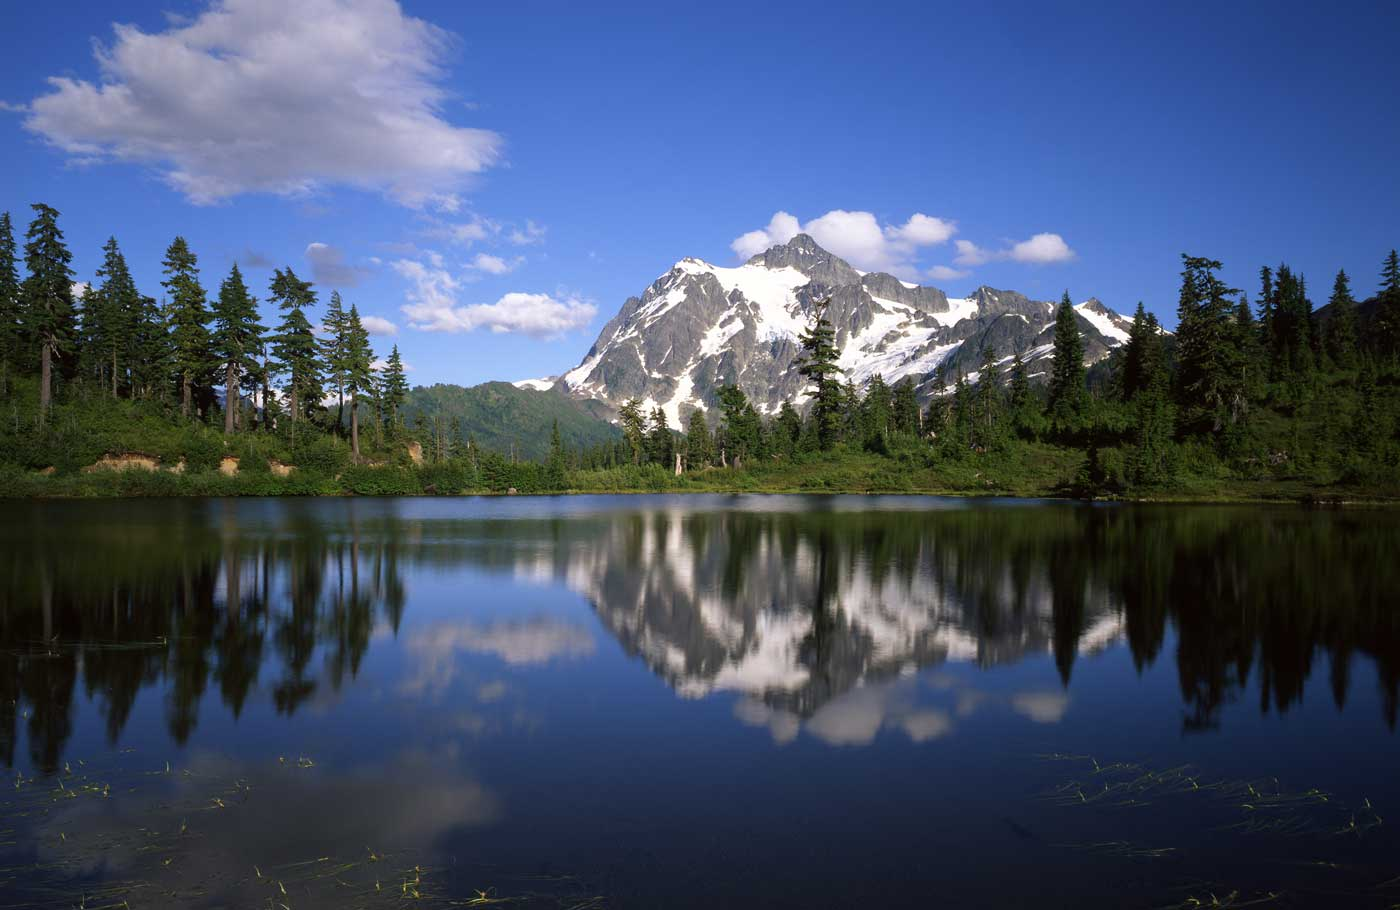 North Cascades National Park has unbelievably beautiful scenery